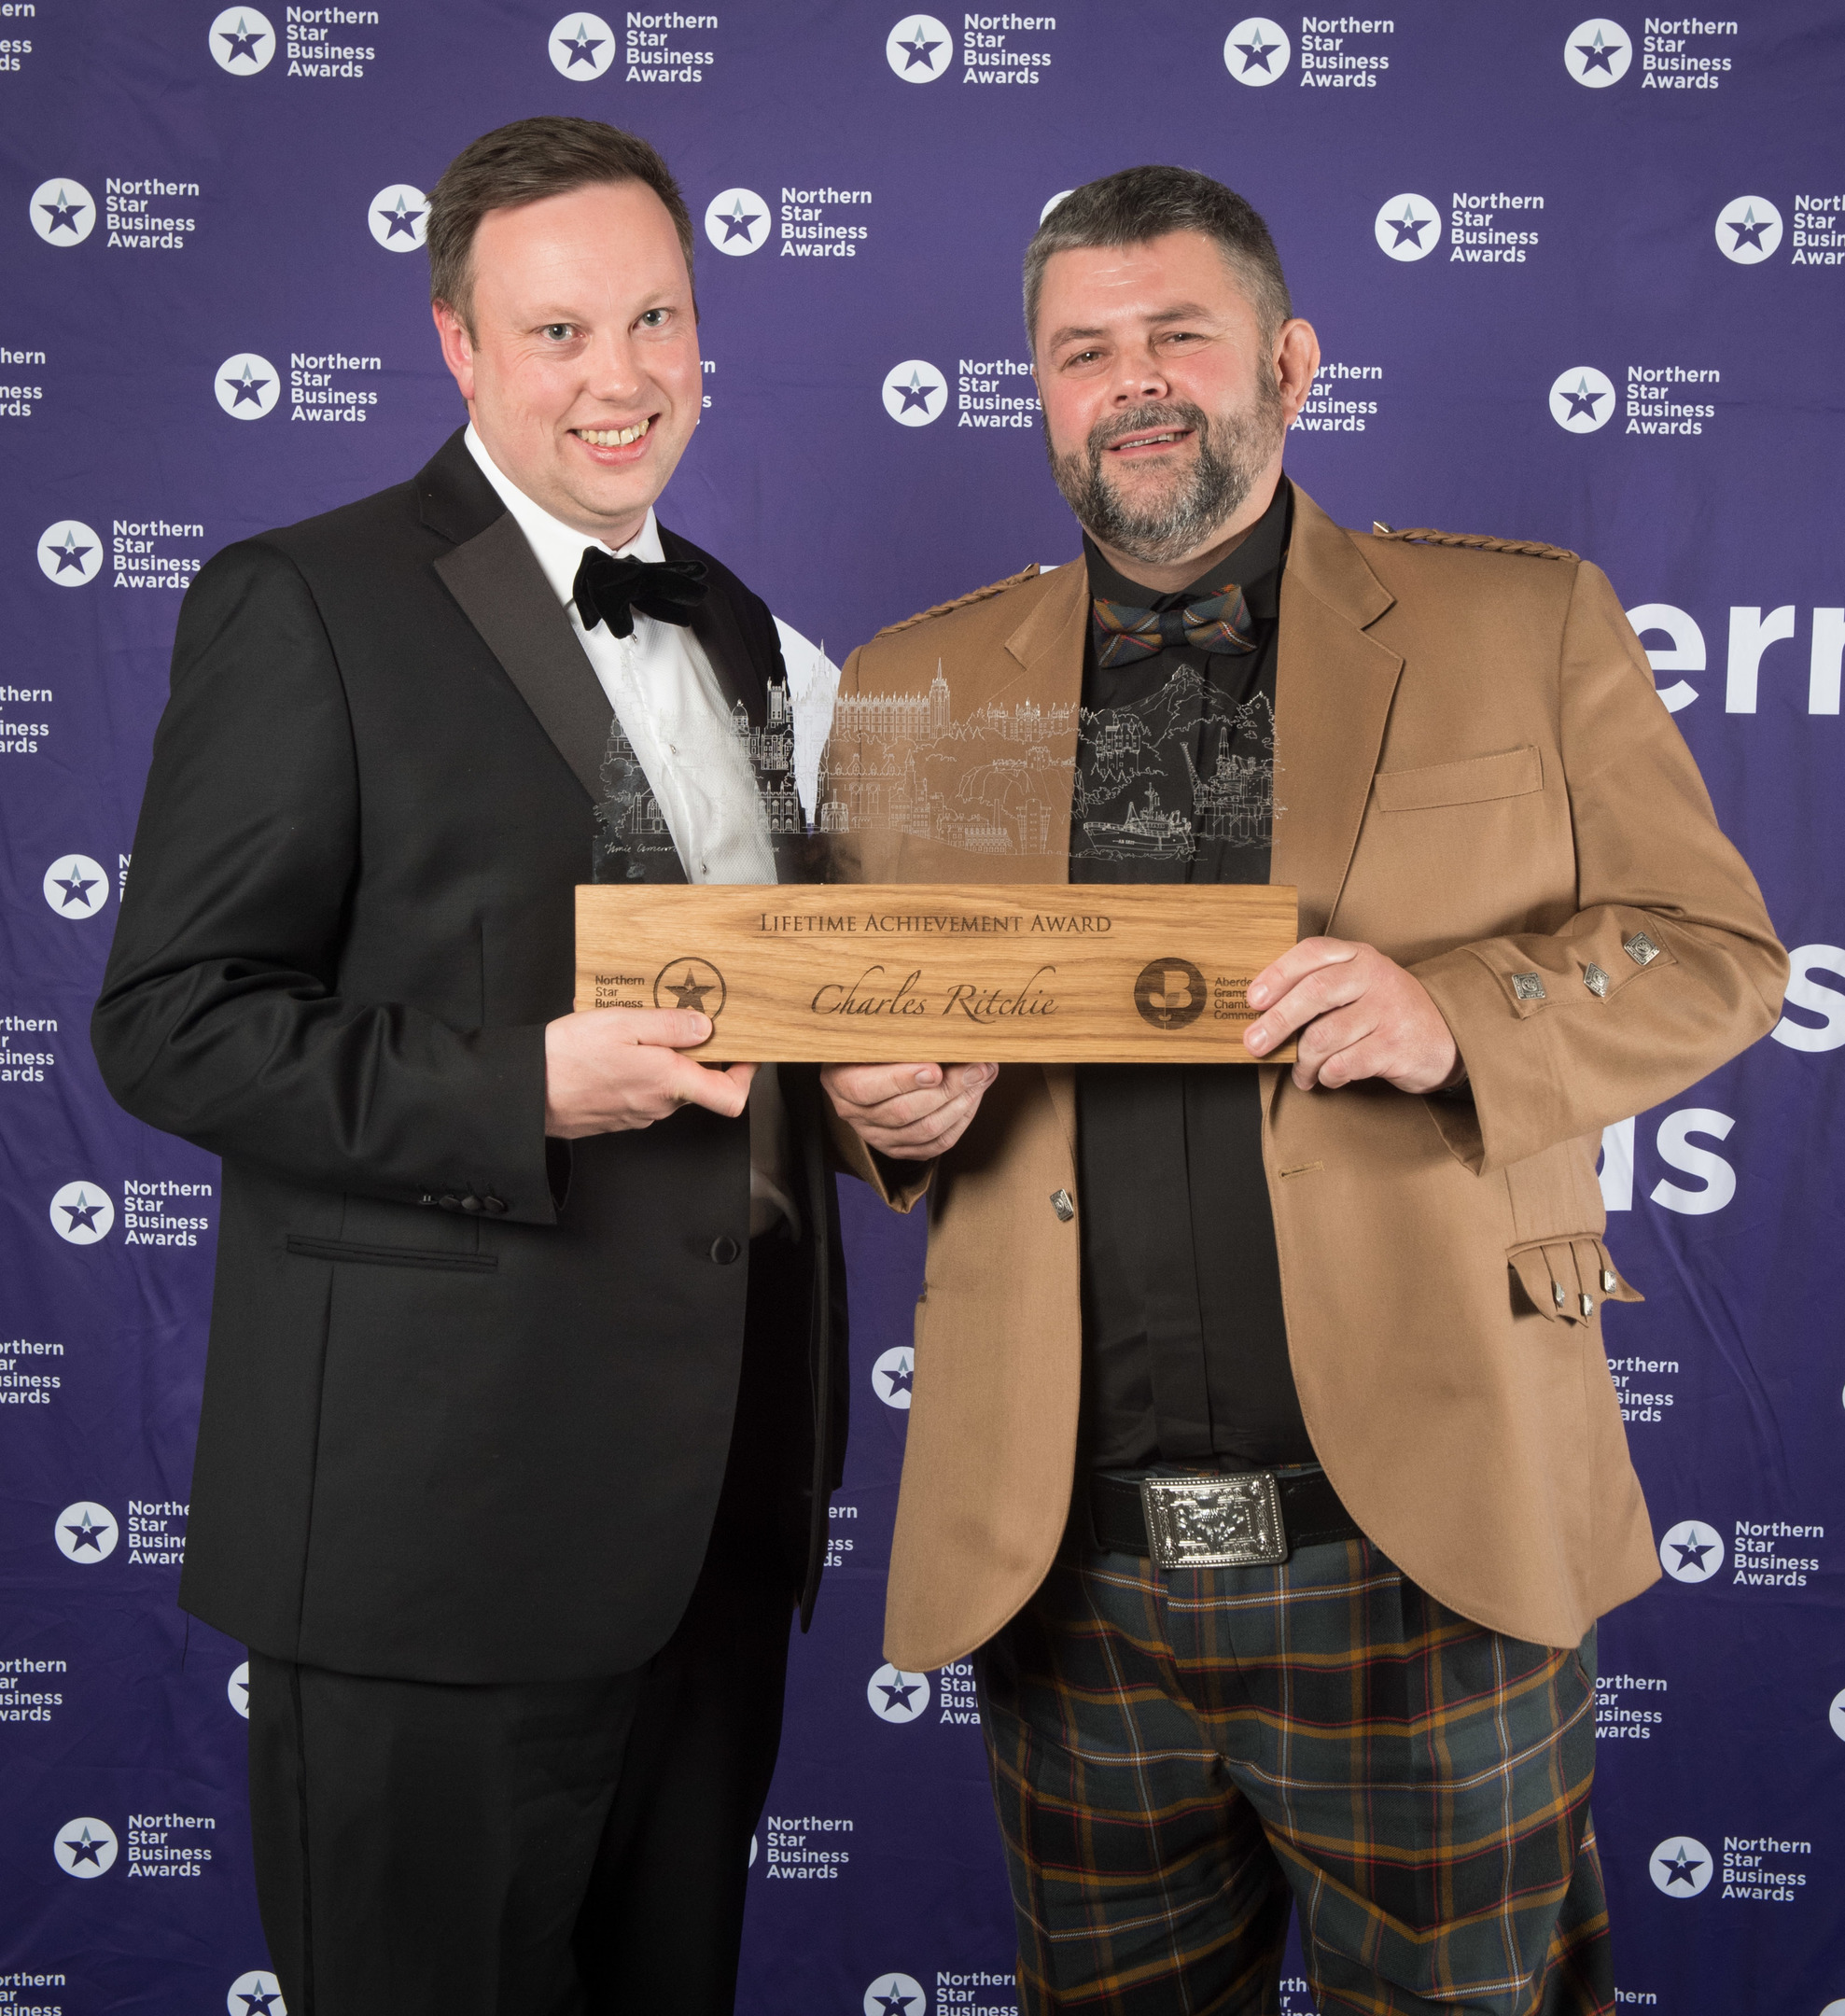 Conrad Ritchie, right, accepts the lifetime achievement award on behalf of his late father, Charles, with awards sponsor Fraser Carr from Cala Homes  Picture by Michal Wachucik / Abermedia